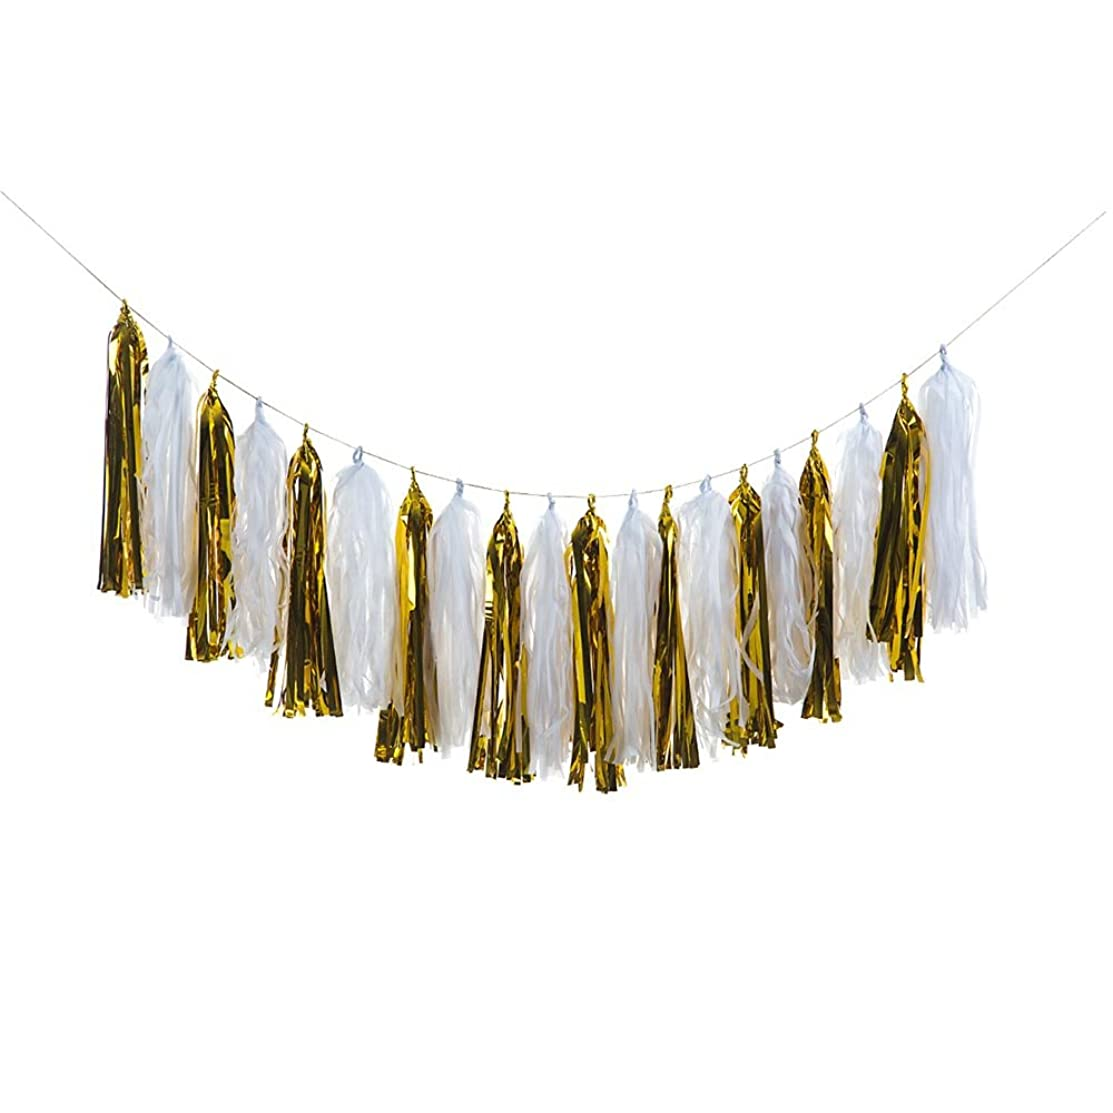 ZOOYOO Tissue Paper Tassels, Tassel Garland Banner for Event & Party Supplies, 20 pcs DIY Kits (White/Gold)